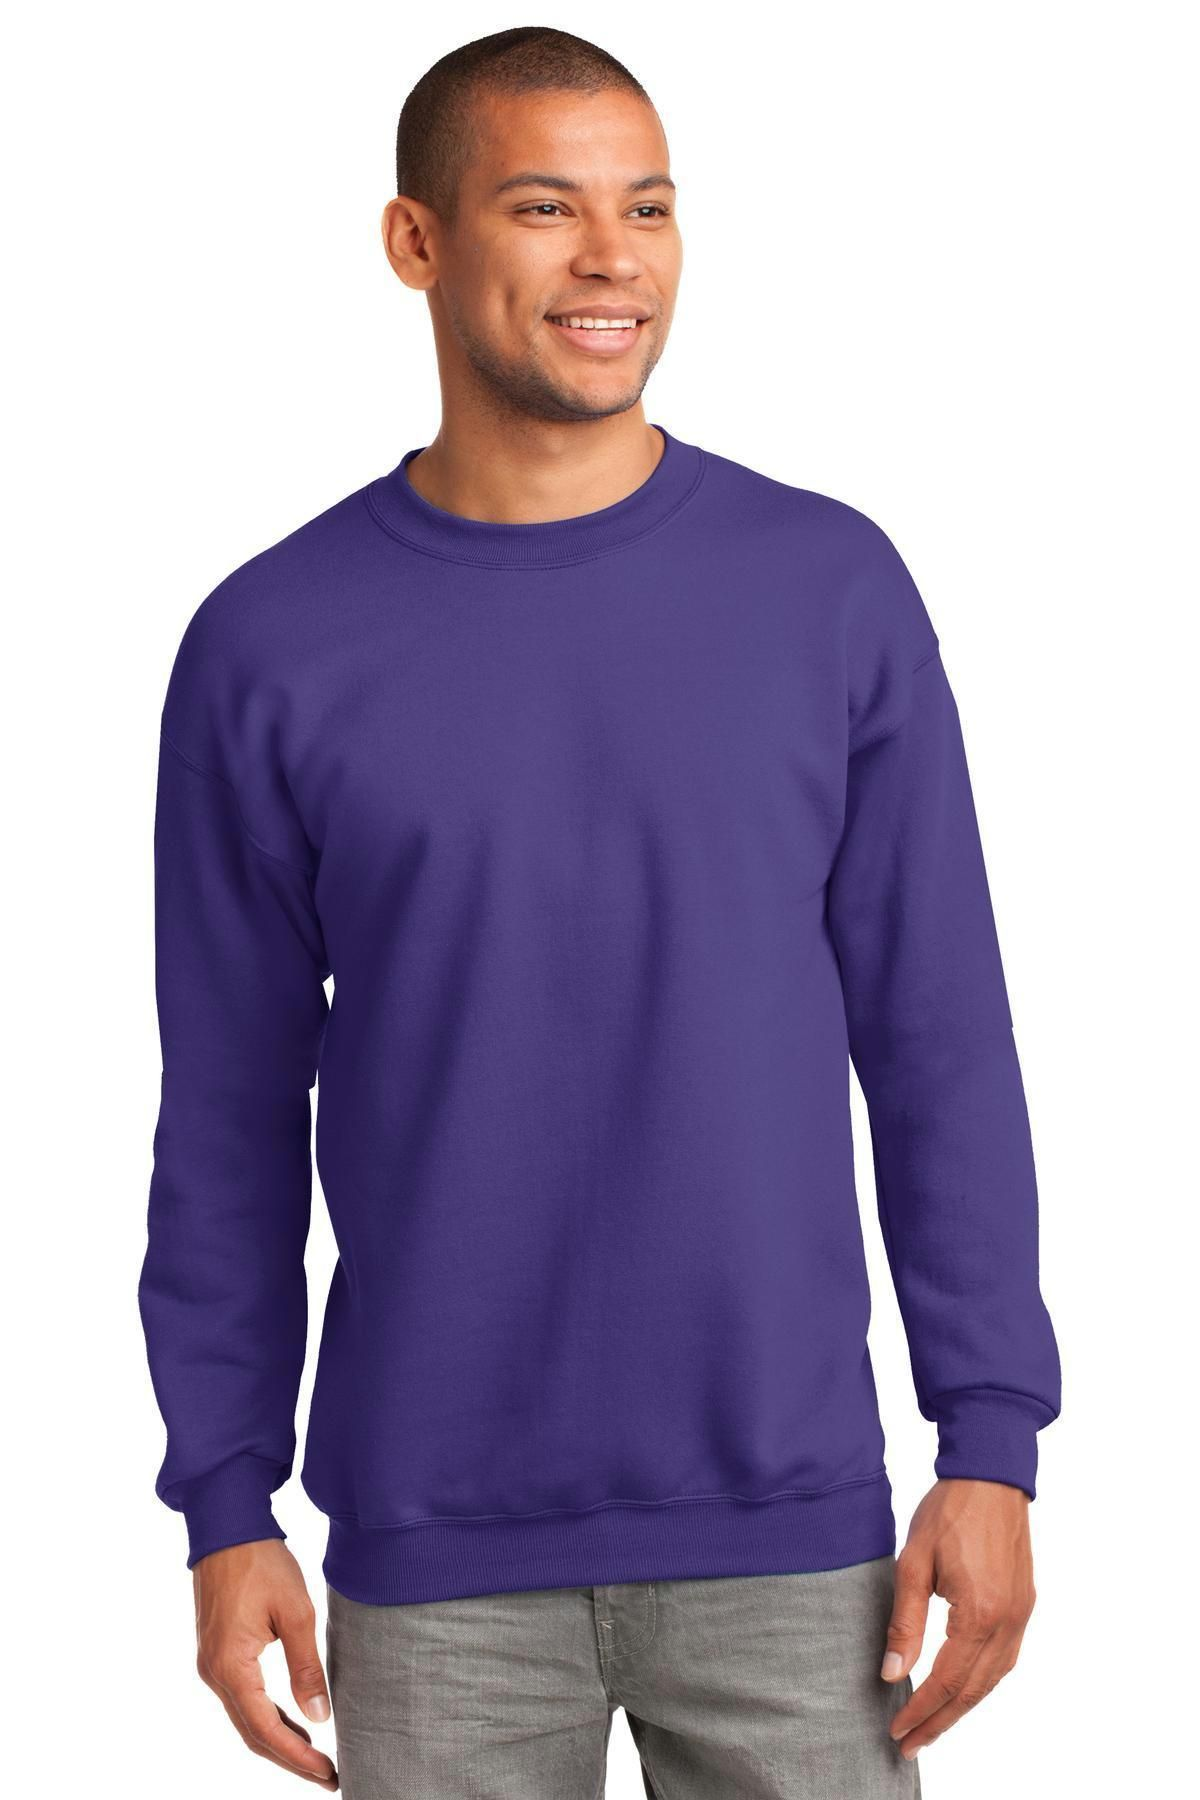 59f3143615 Port & Company - Essential Fleece Crewneck Sweatshirt. PC90 ...